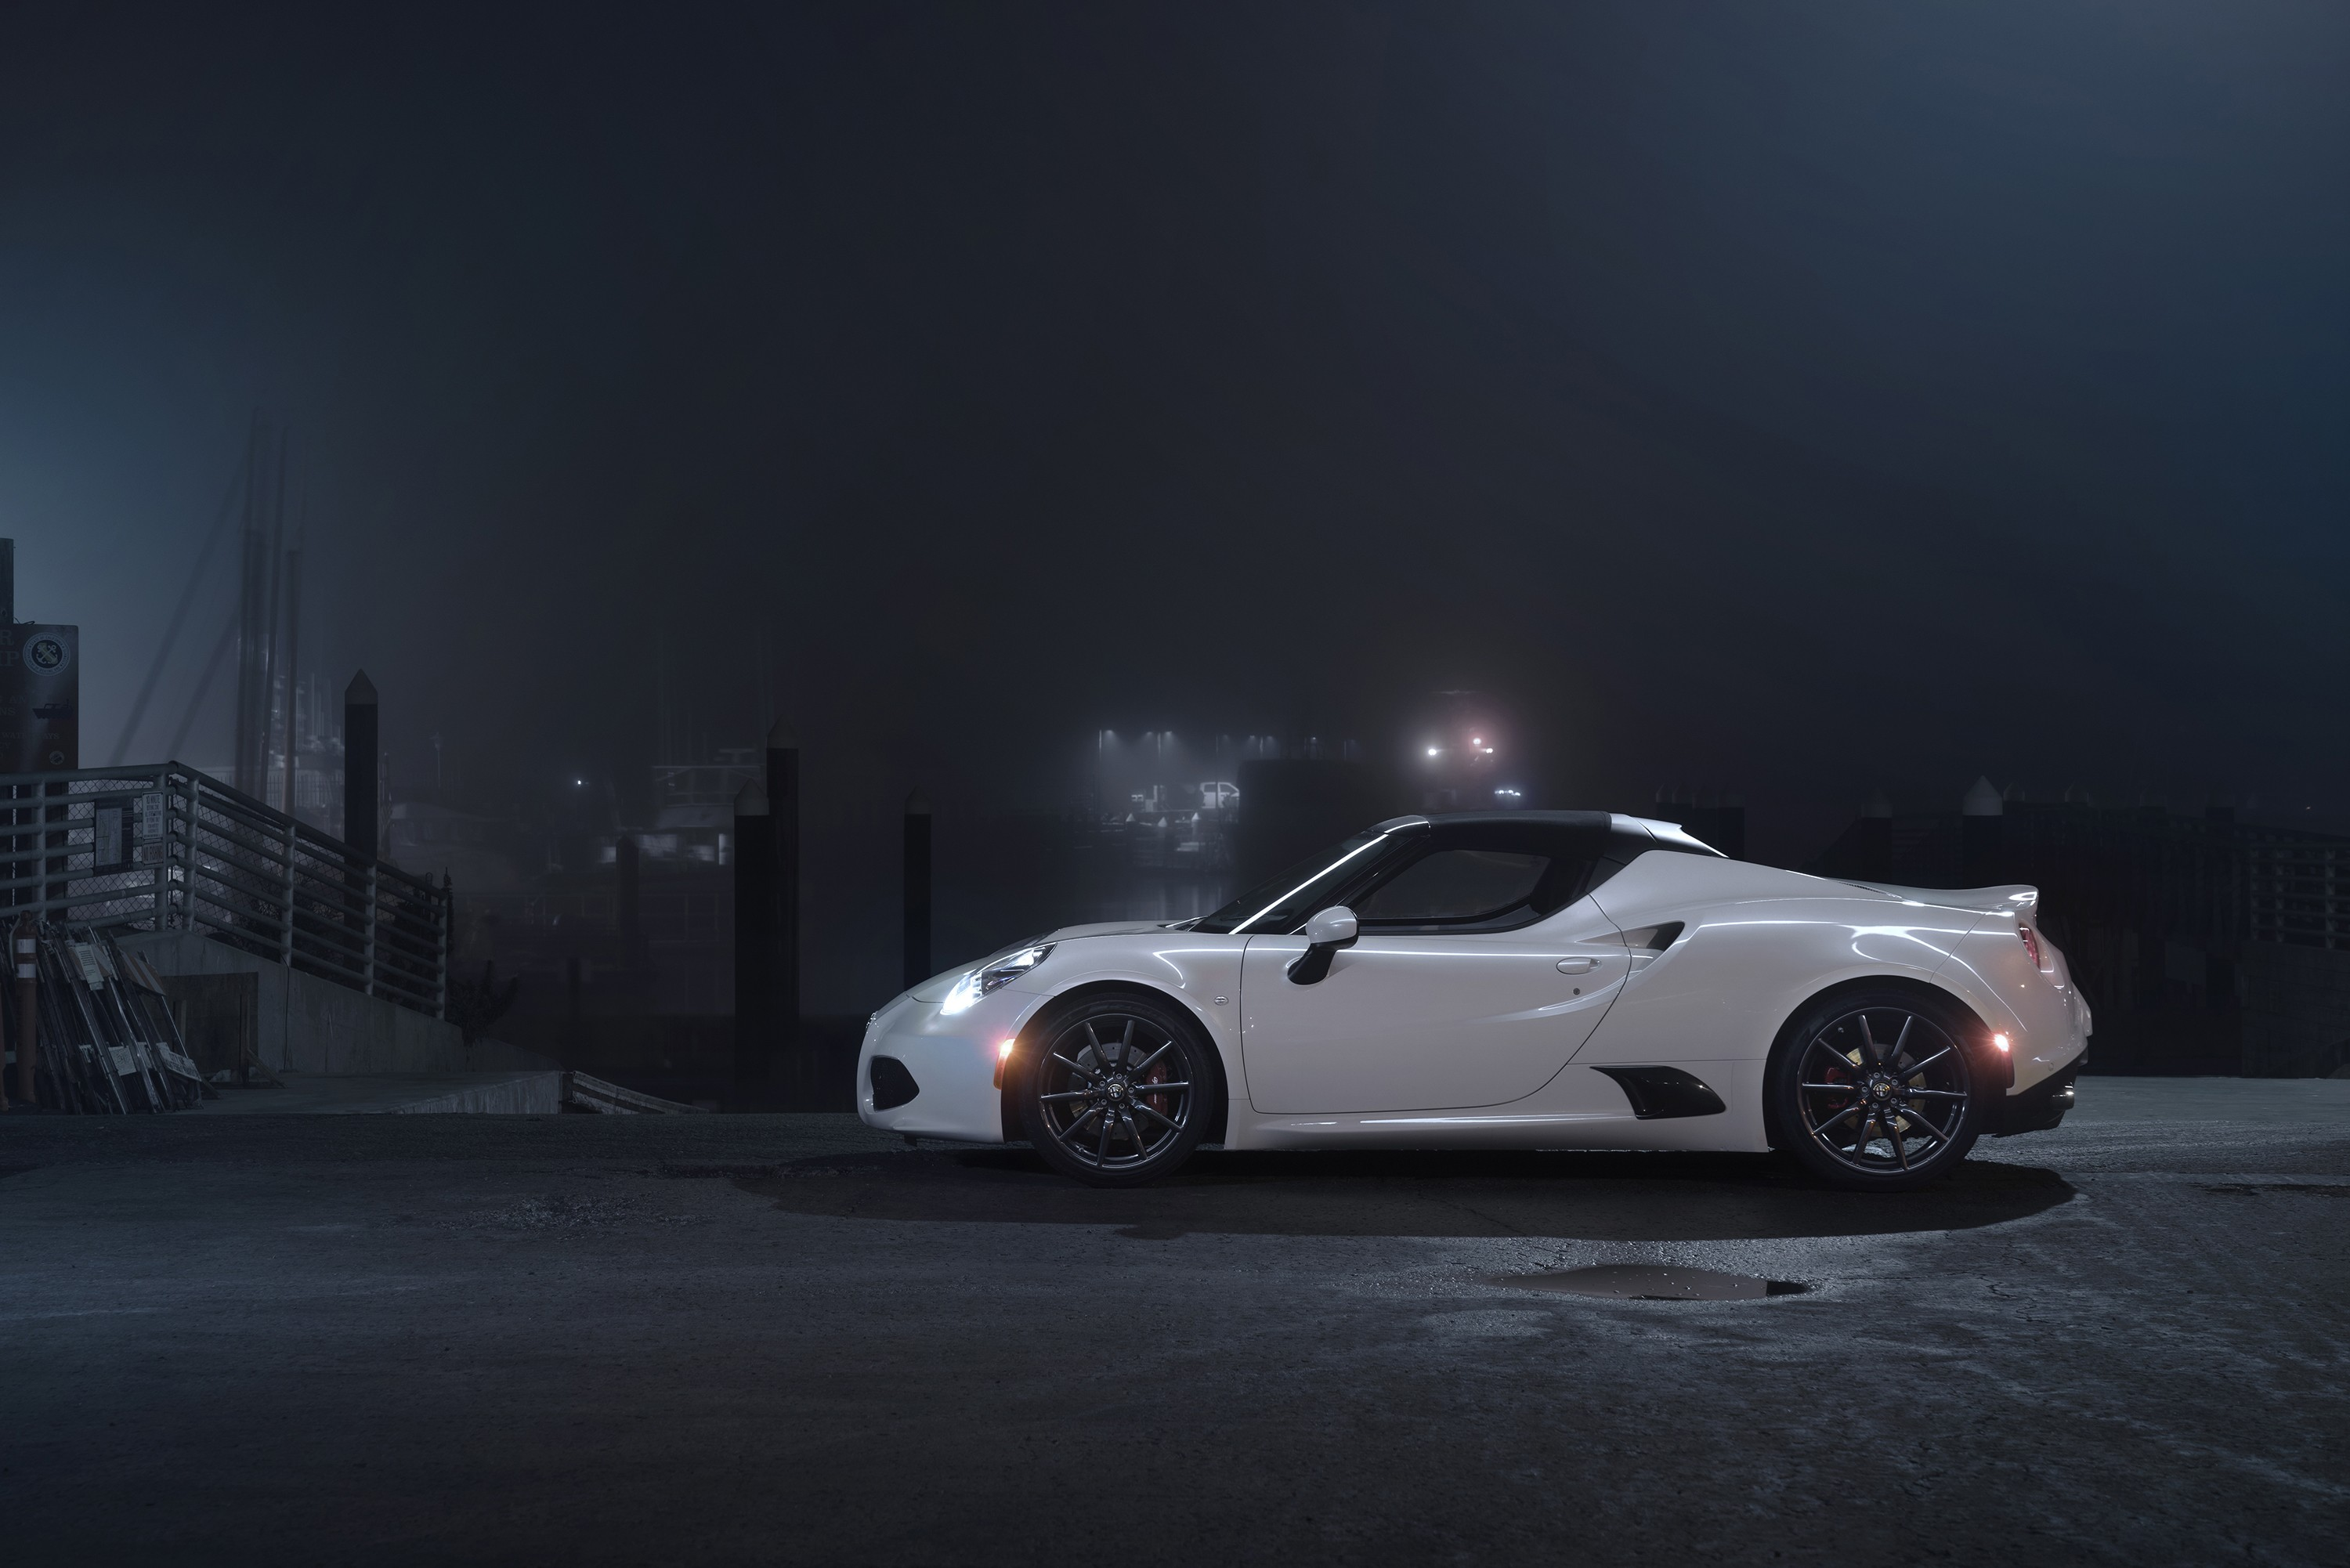 Mercedes Benz Amg Iphone Wallpaper Wallpaper Alfa Romeo 4c Coupe Sportcar White Cars